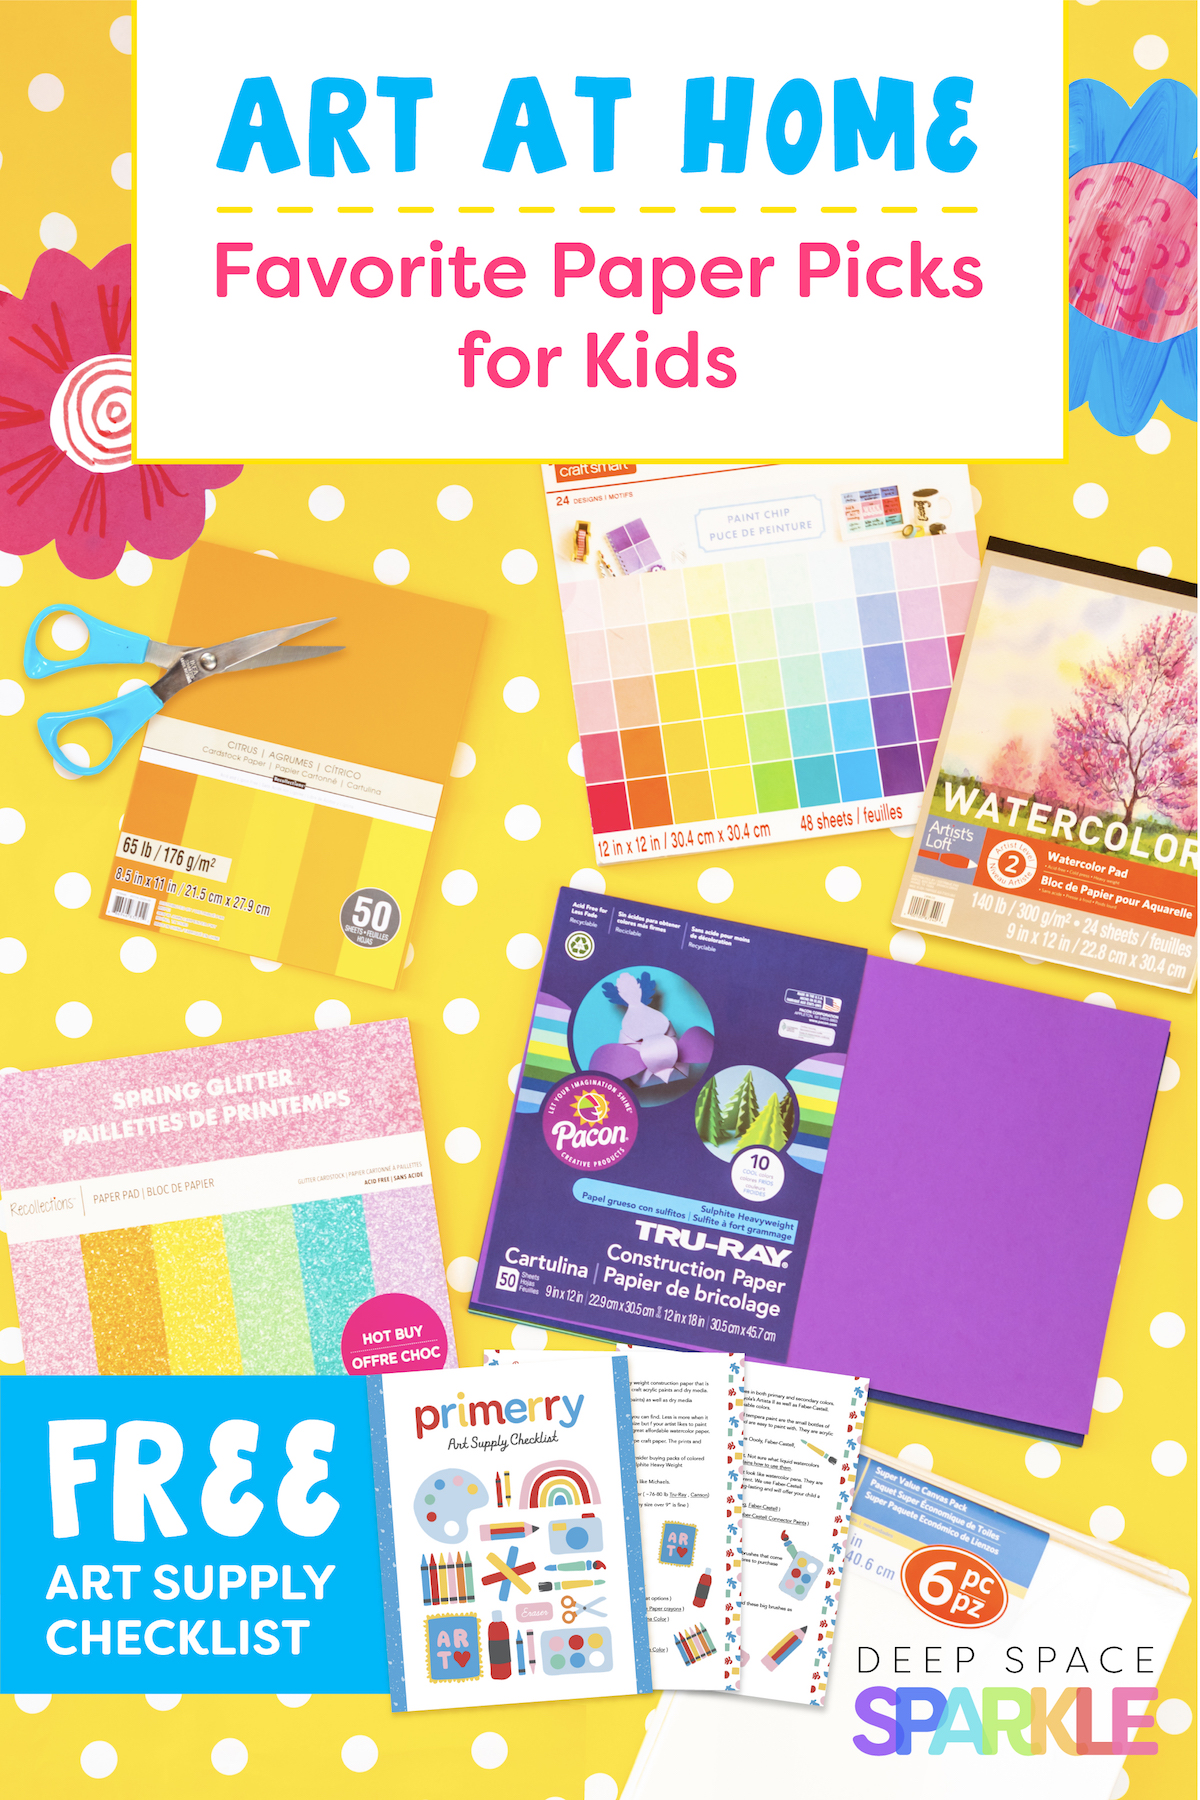 Art at home art project with my favorite paper picks for kids with a free art supply checklist